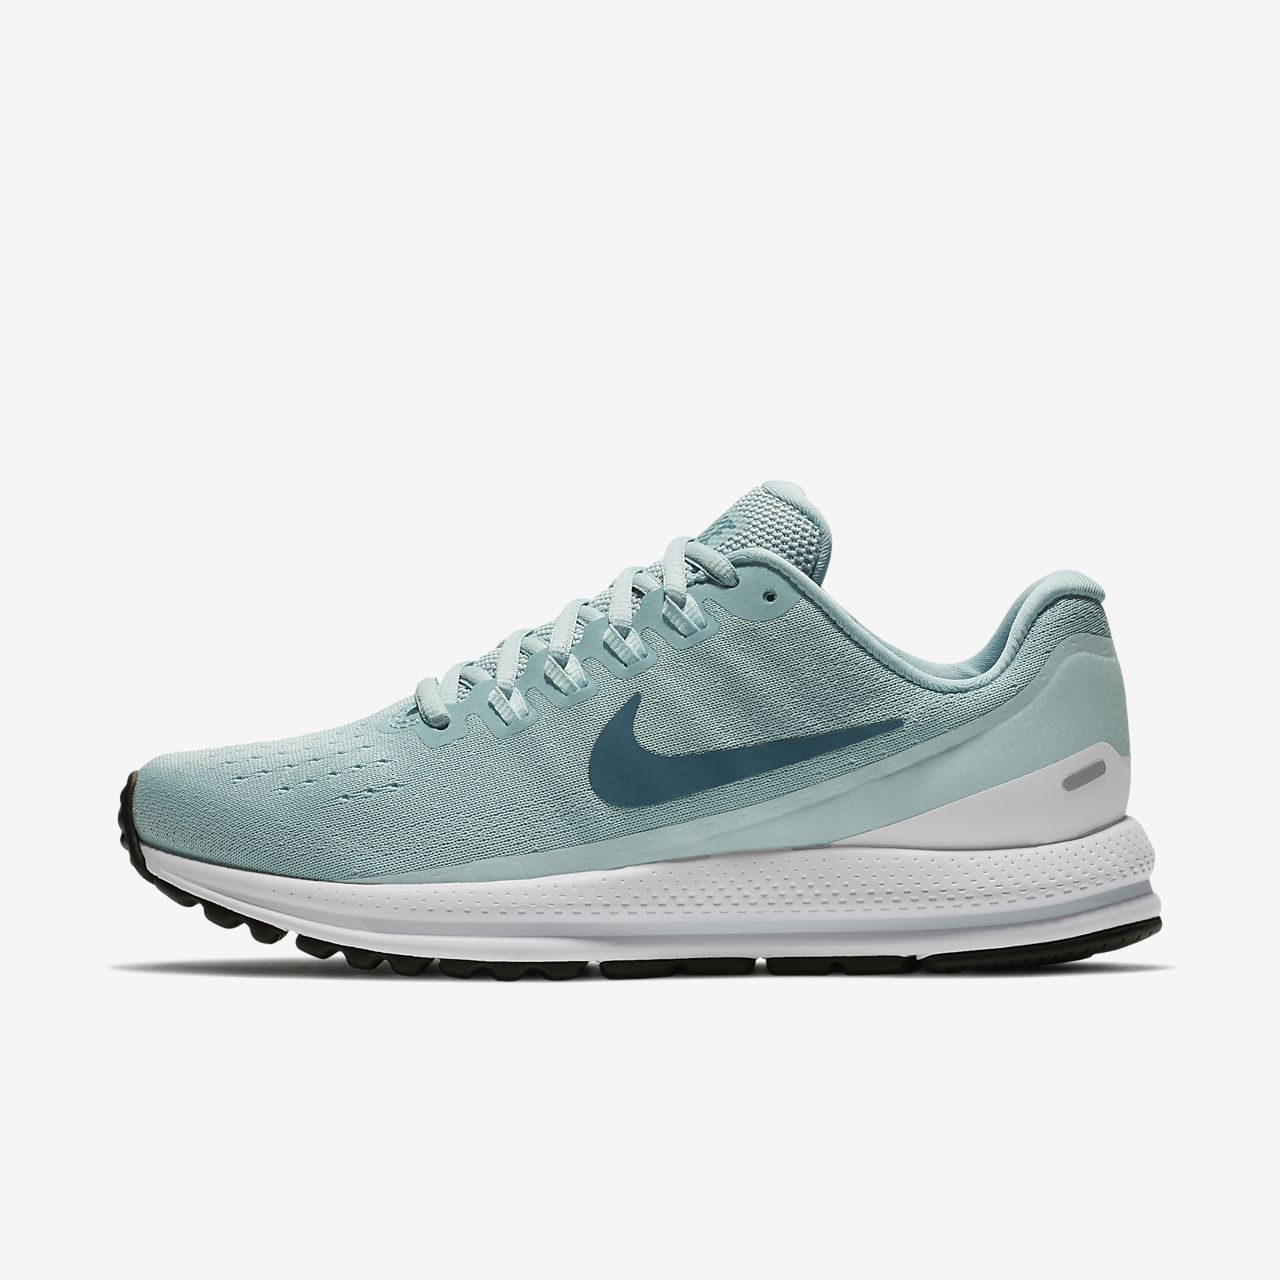 Chaussure de running pour Femme. Nike Air Zoom Vomero 13